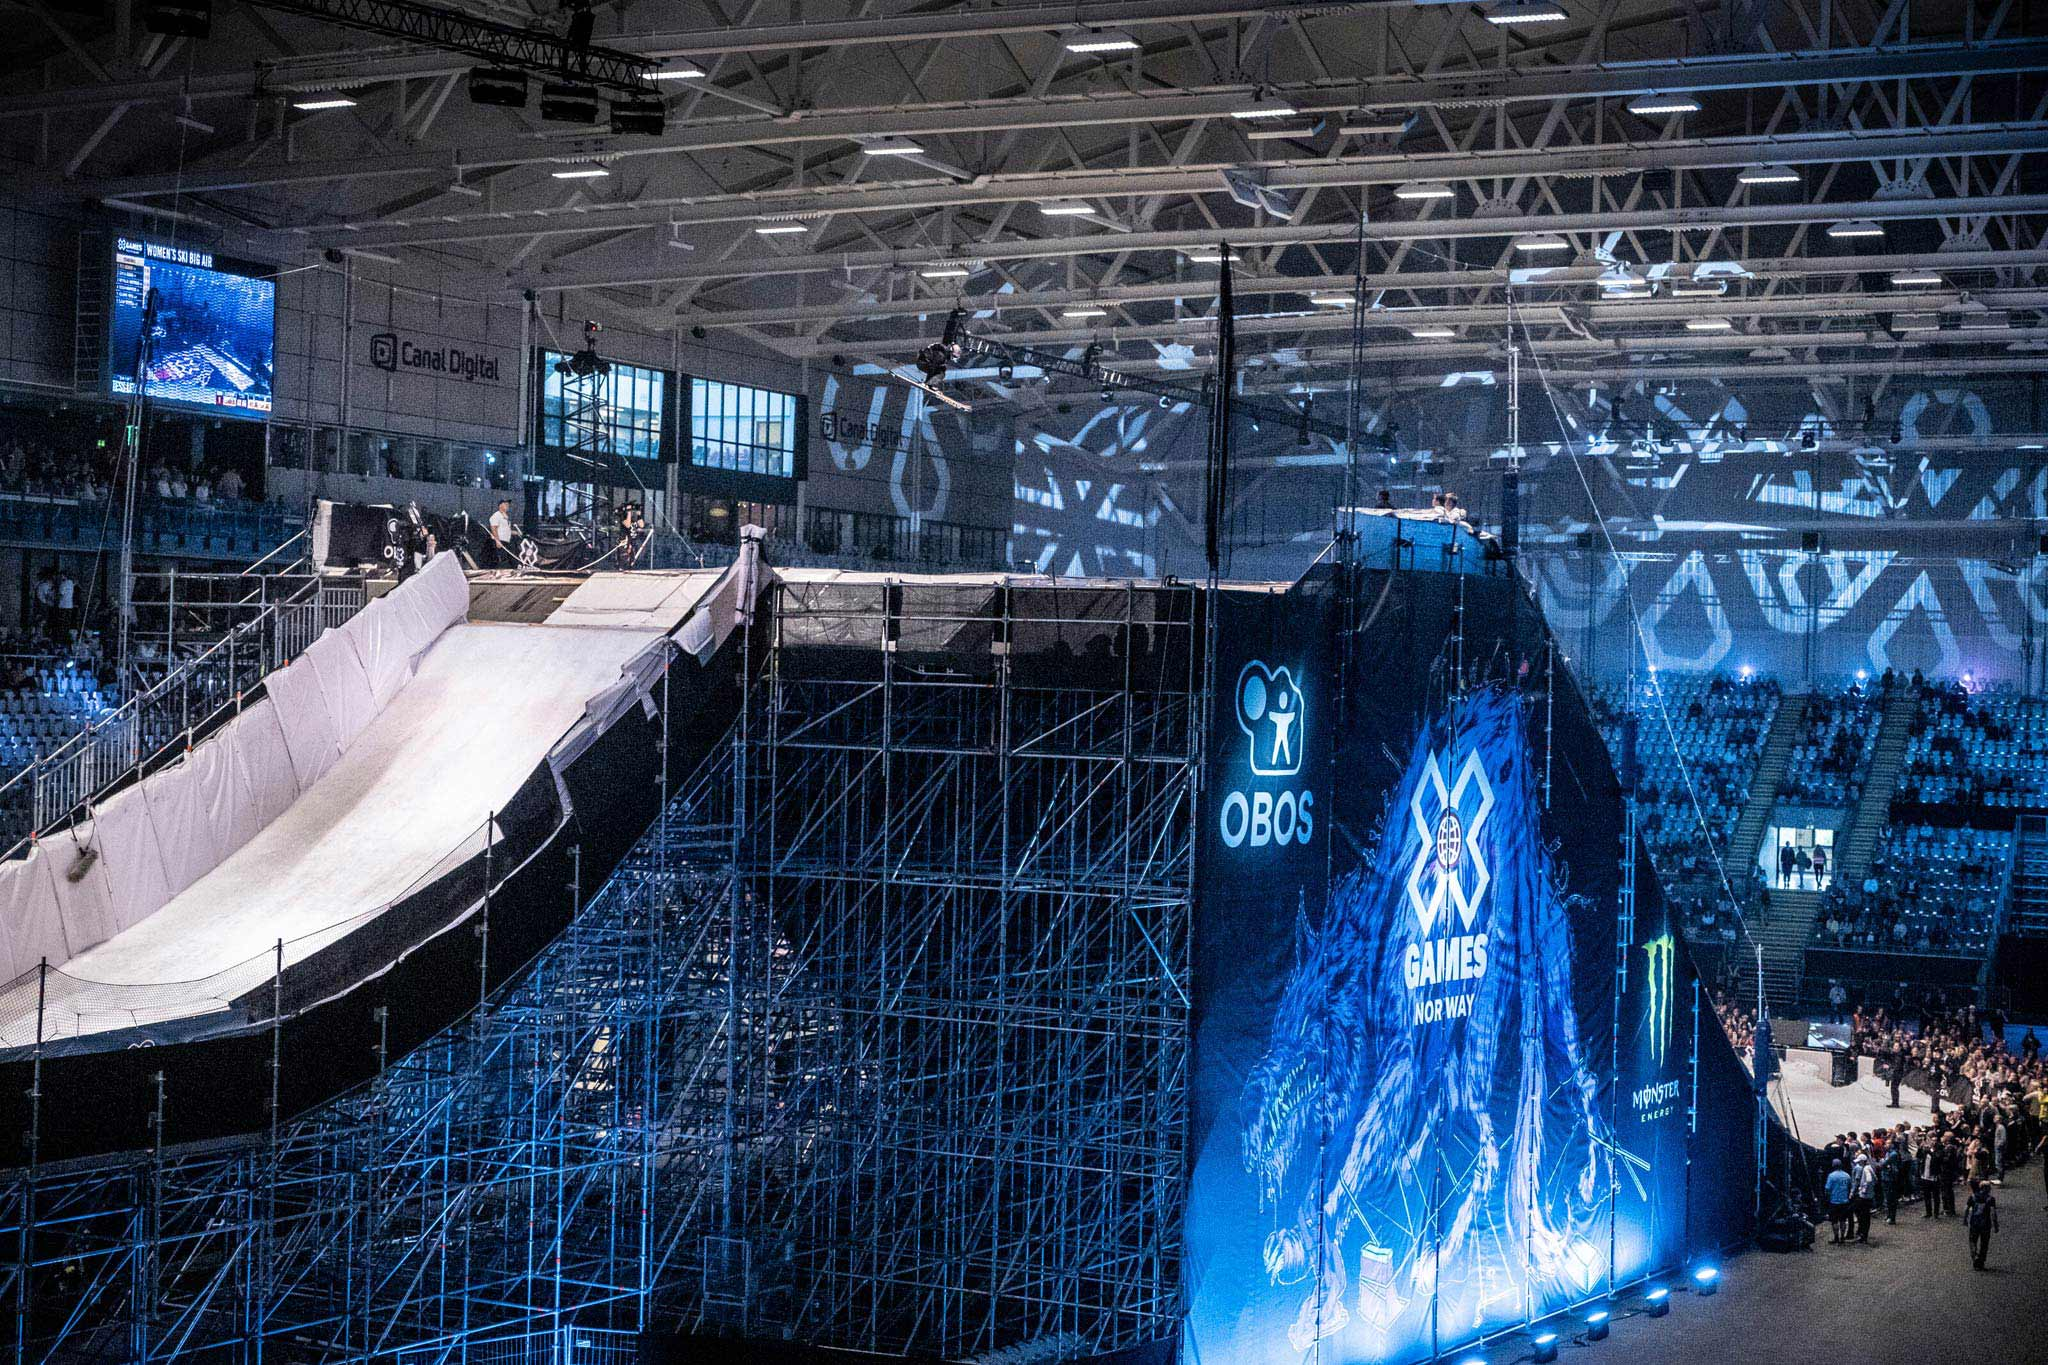 Für den Big Air Contests baute Schneestern eine massive Rampe in das Indoor-Stadium in Oslo. - Foto: Red Bull Content Pool